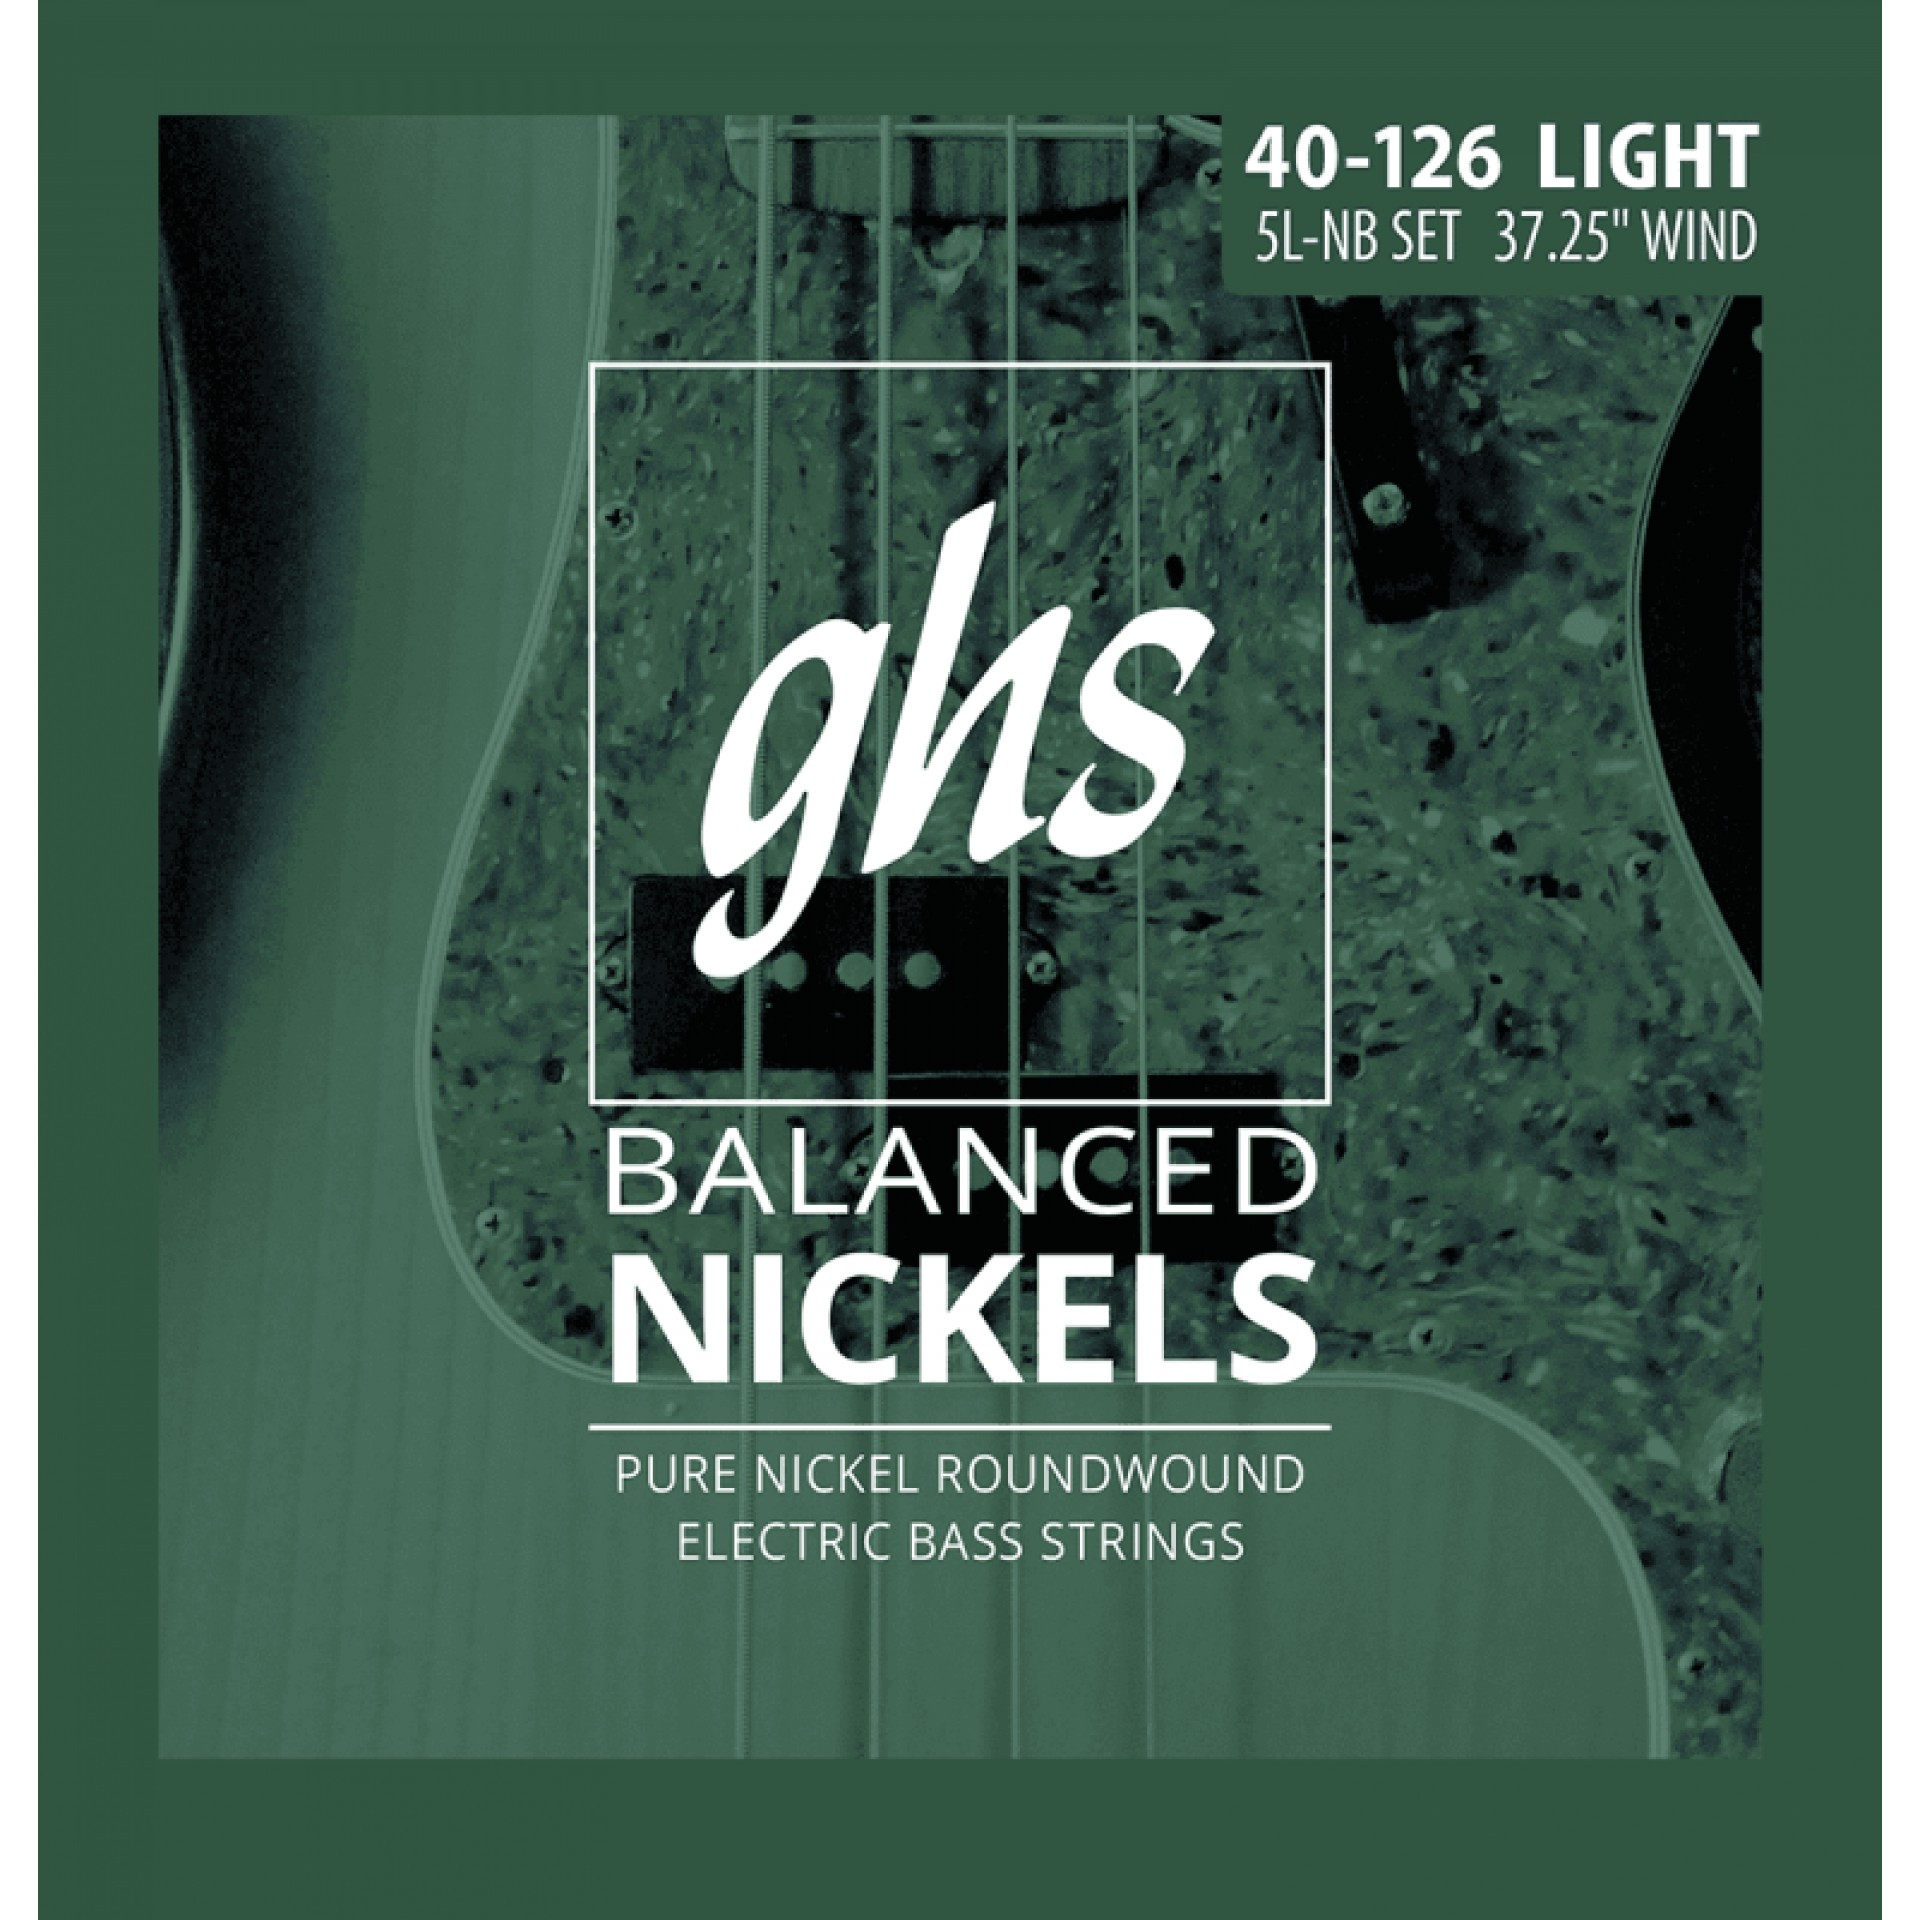 GHS 5L-NB Balanced Nickels Pure Nickel Round Wound Bass Strings Long Scale - 5-String 40-126